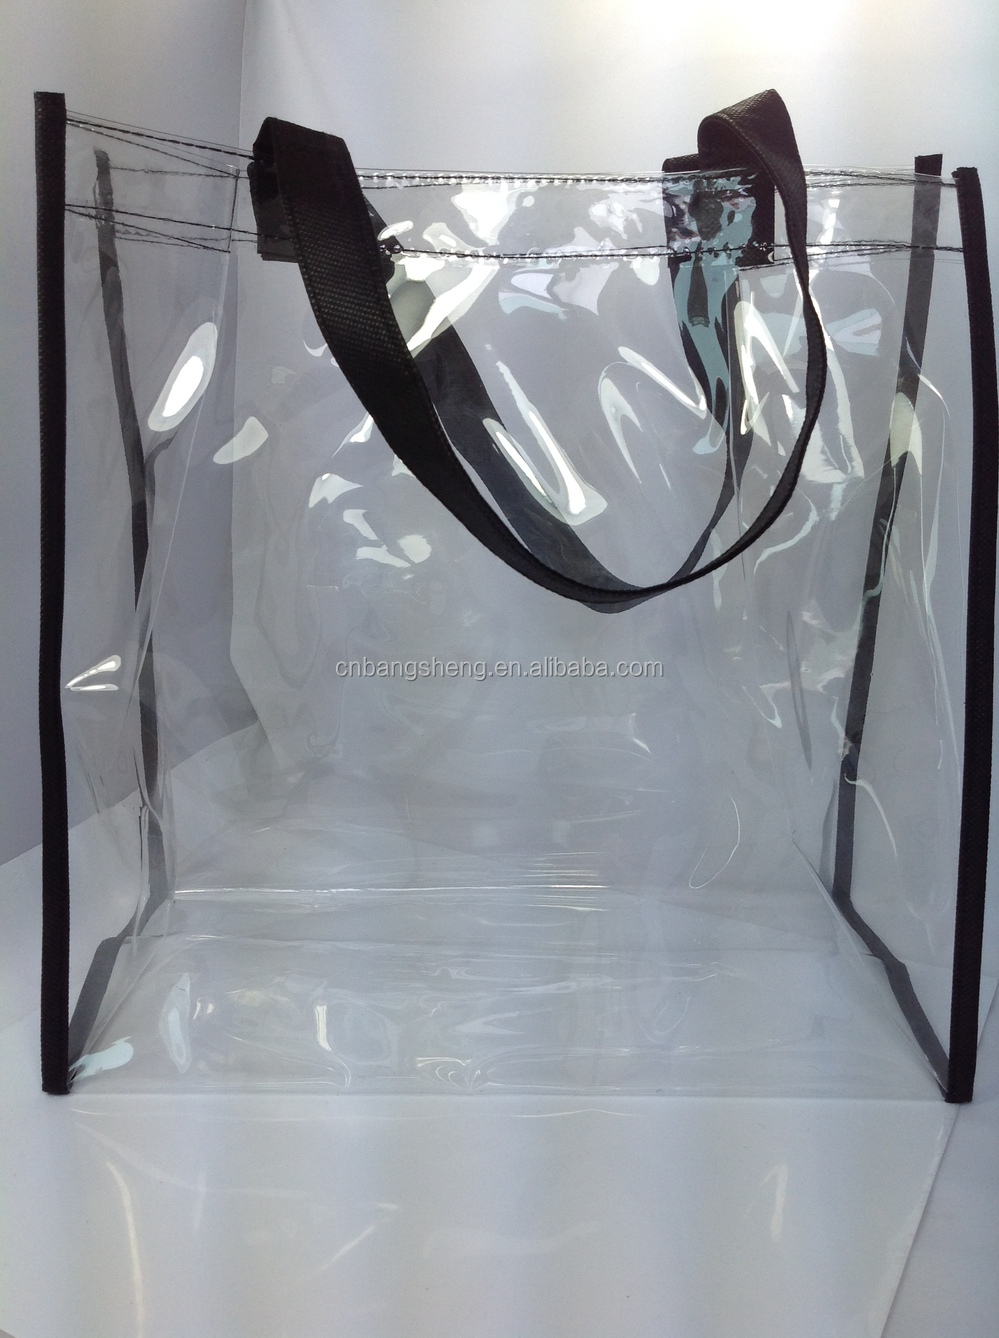 Transparent Shopping Bags - Dayony Bag